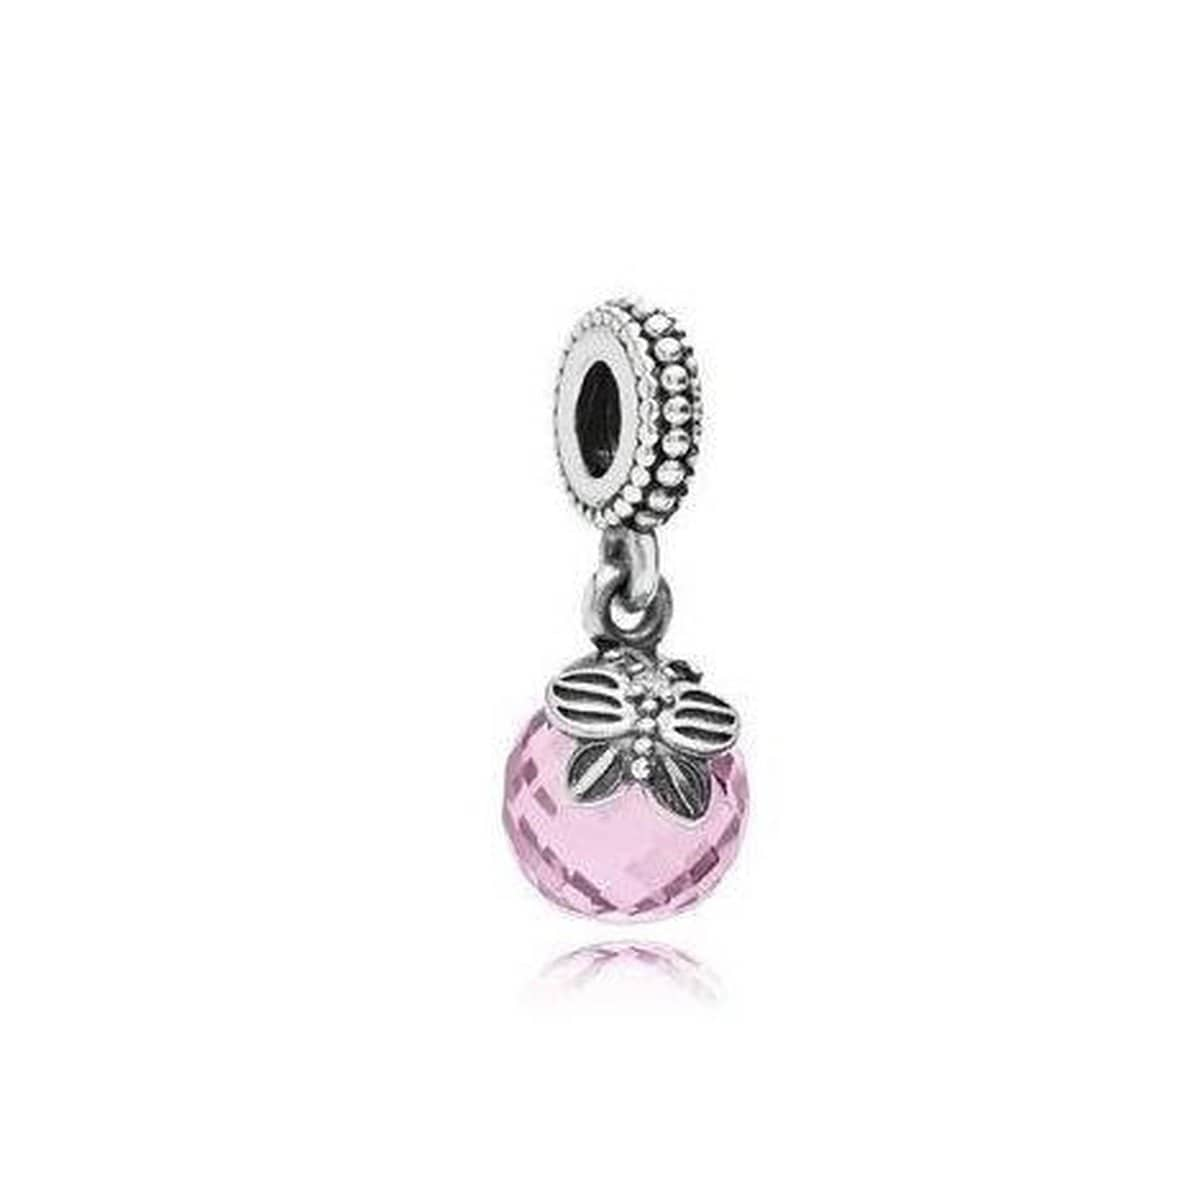 Morning Butterfly Pink Cubic Zirconia Charm - 791258PCZ-Pandora-Renee Taylor Gallery